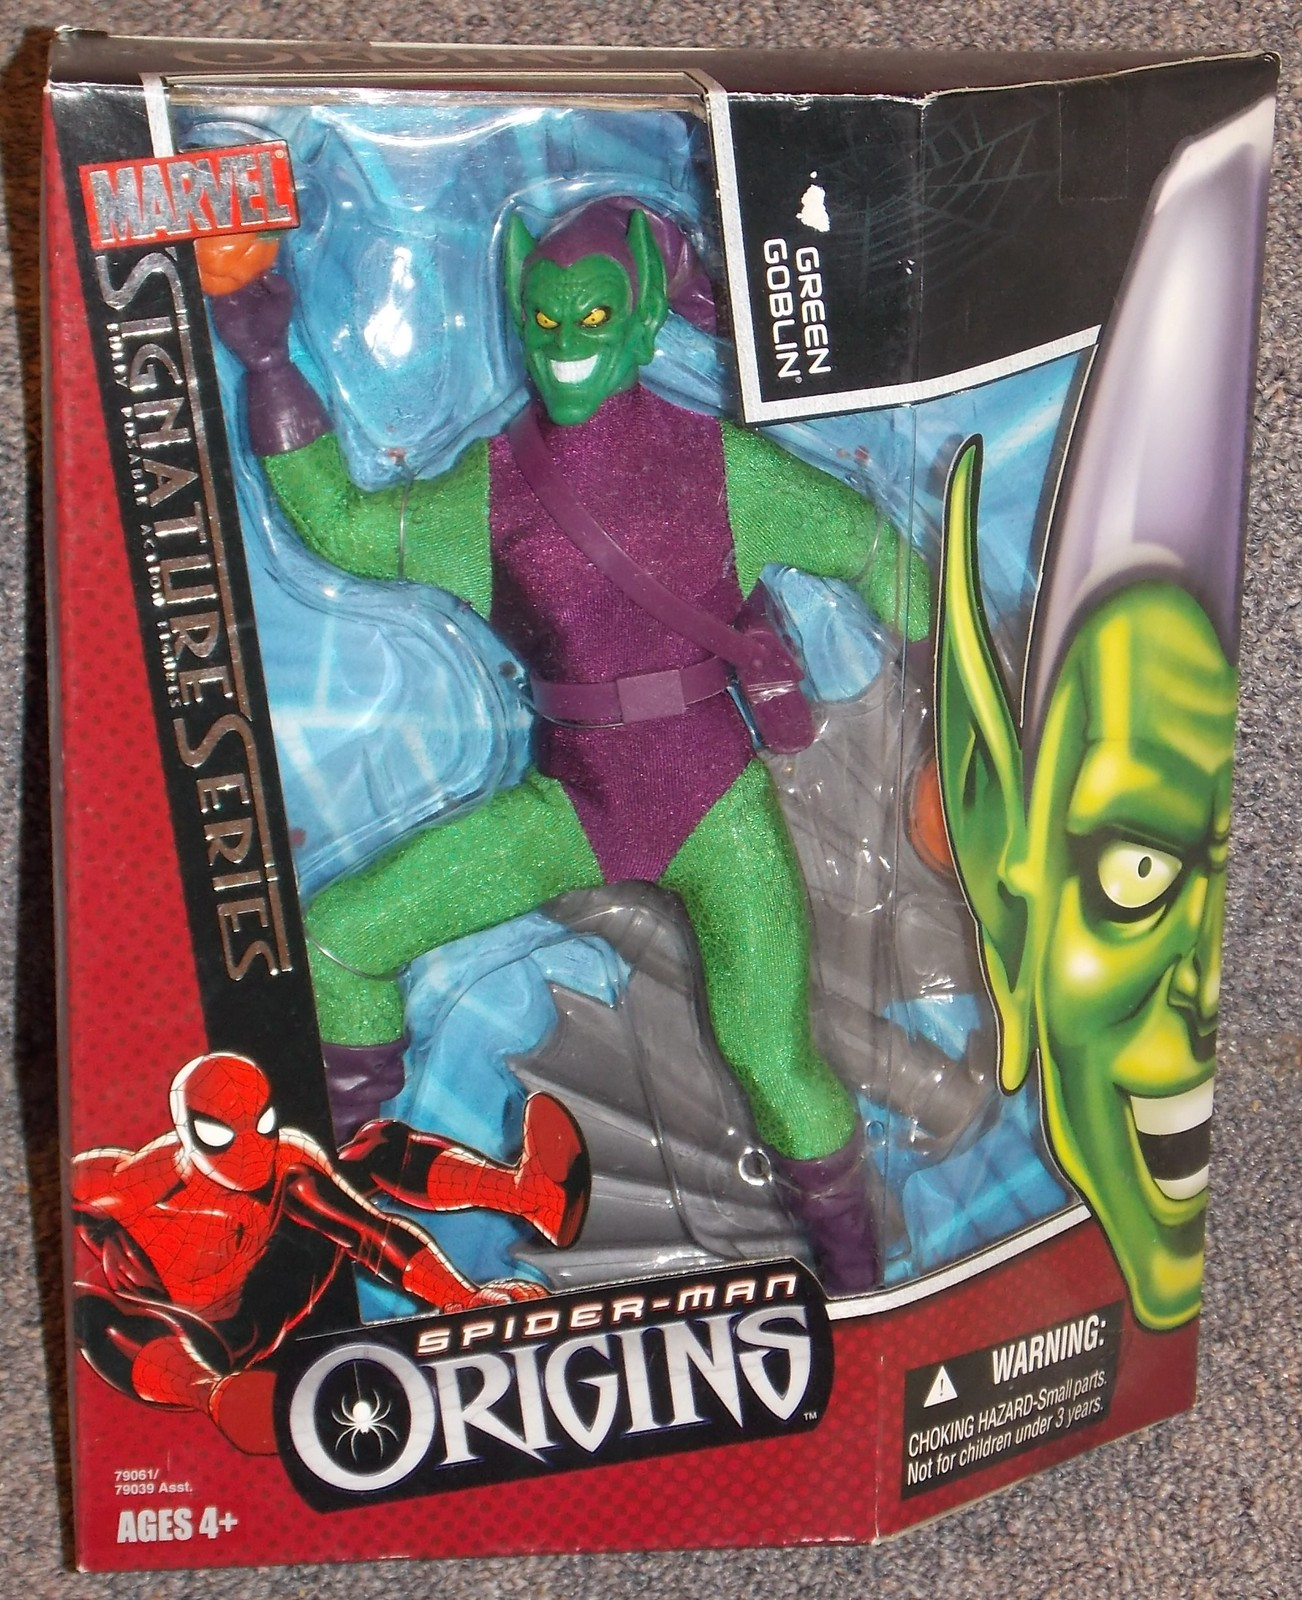 Primary image for 2006 Marvel Spider-Man Origins Green Goblin Figure New In Box Signature Series